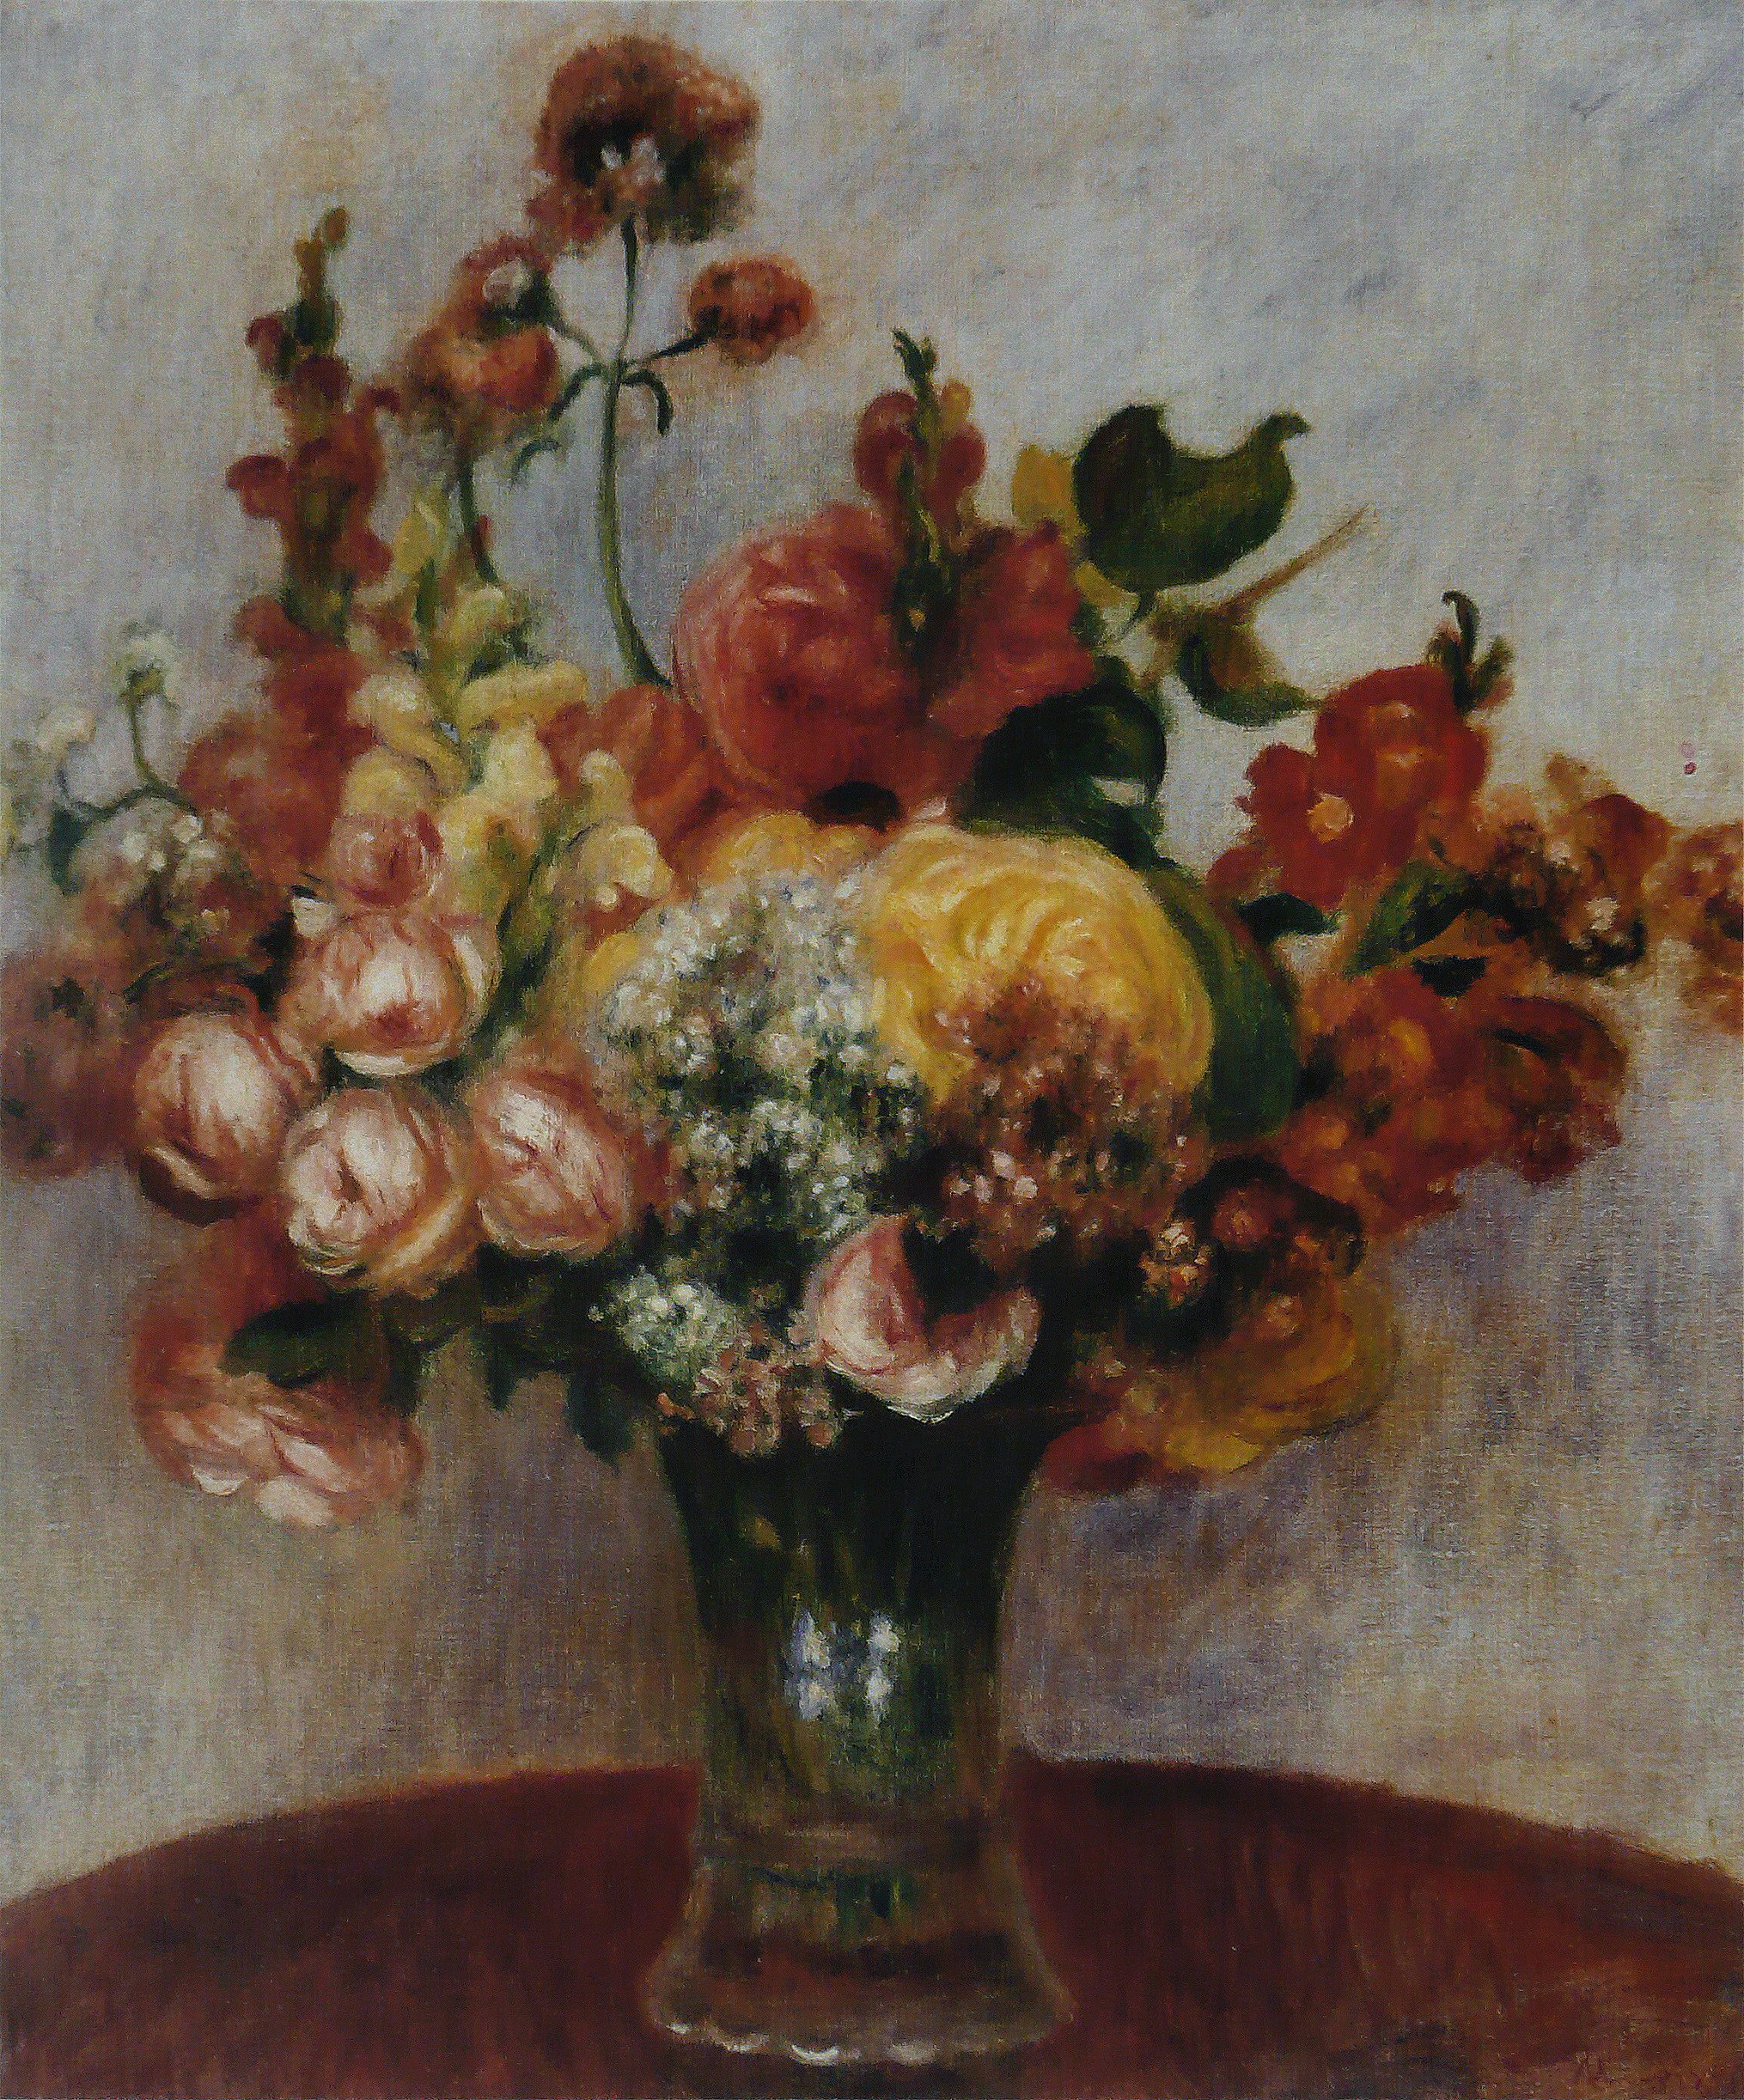 file pierre auguste renoir fleurs dans un vase mus e de l 39 orangerie jpg wikimedia commons. Black Bedroom Furniture Sets. Home Design Ideas